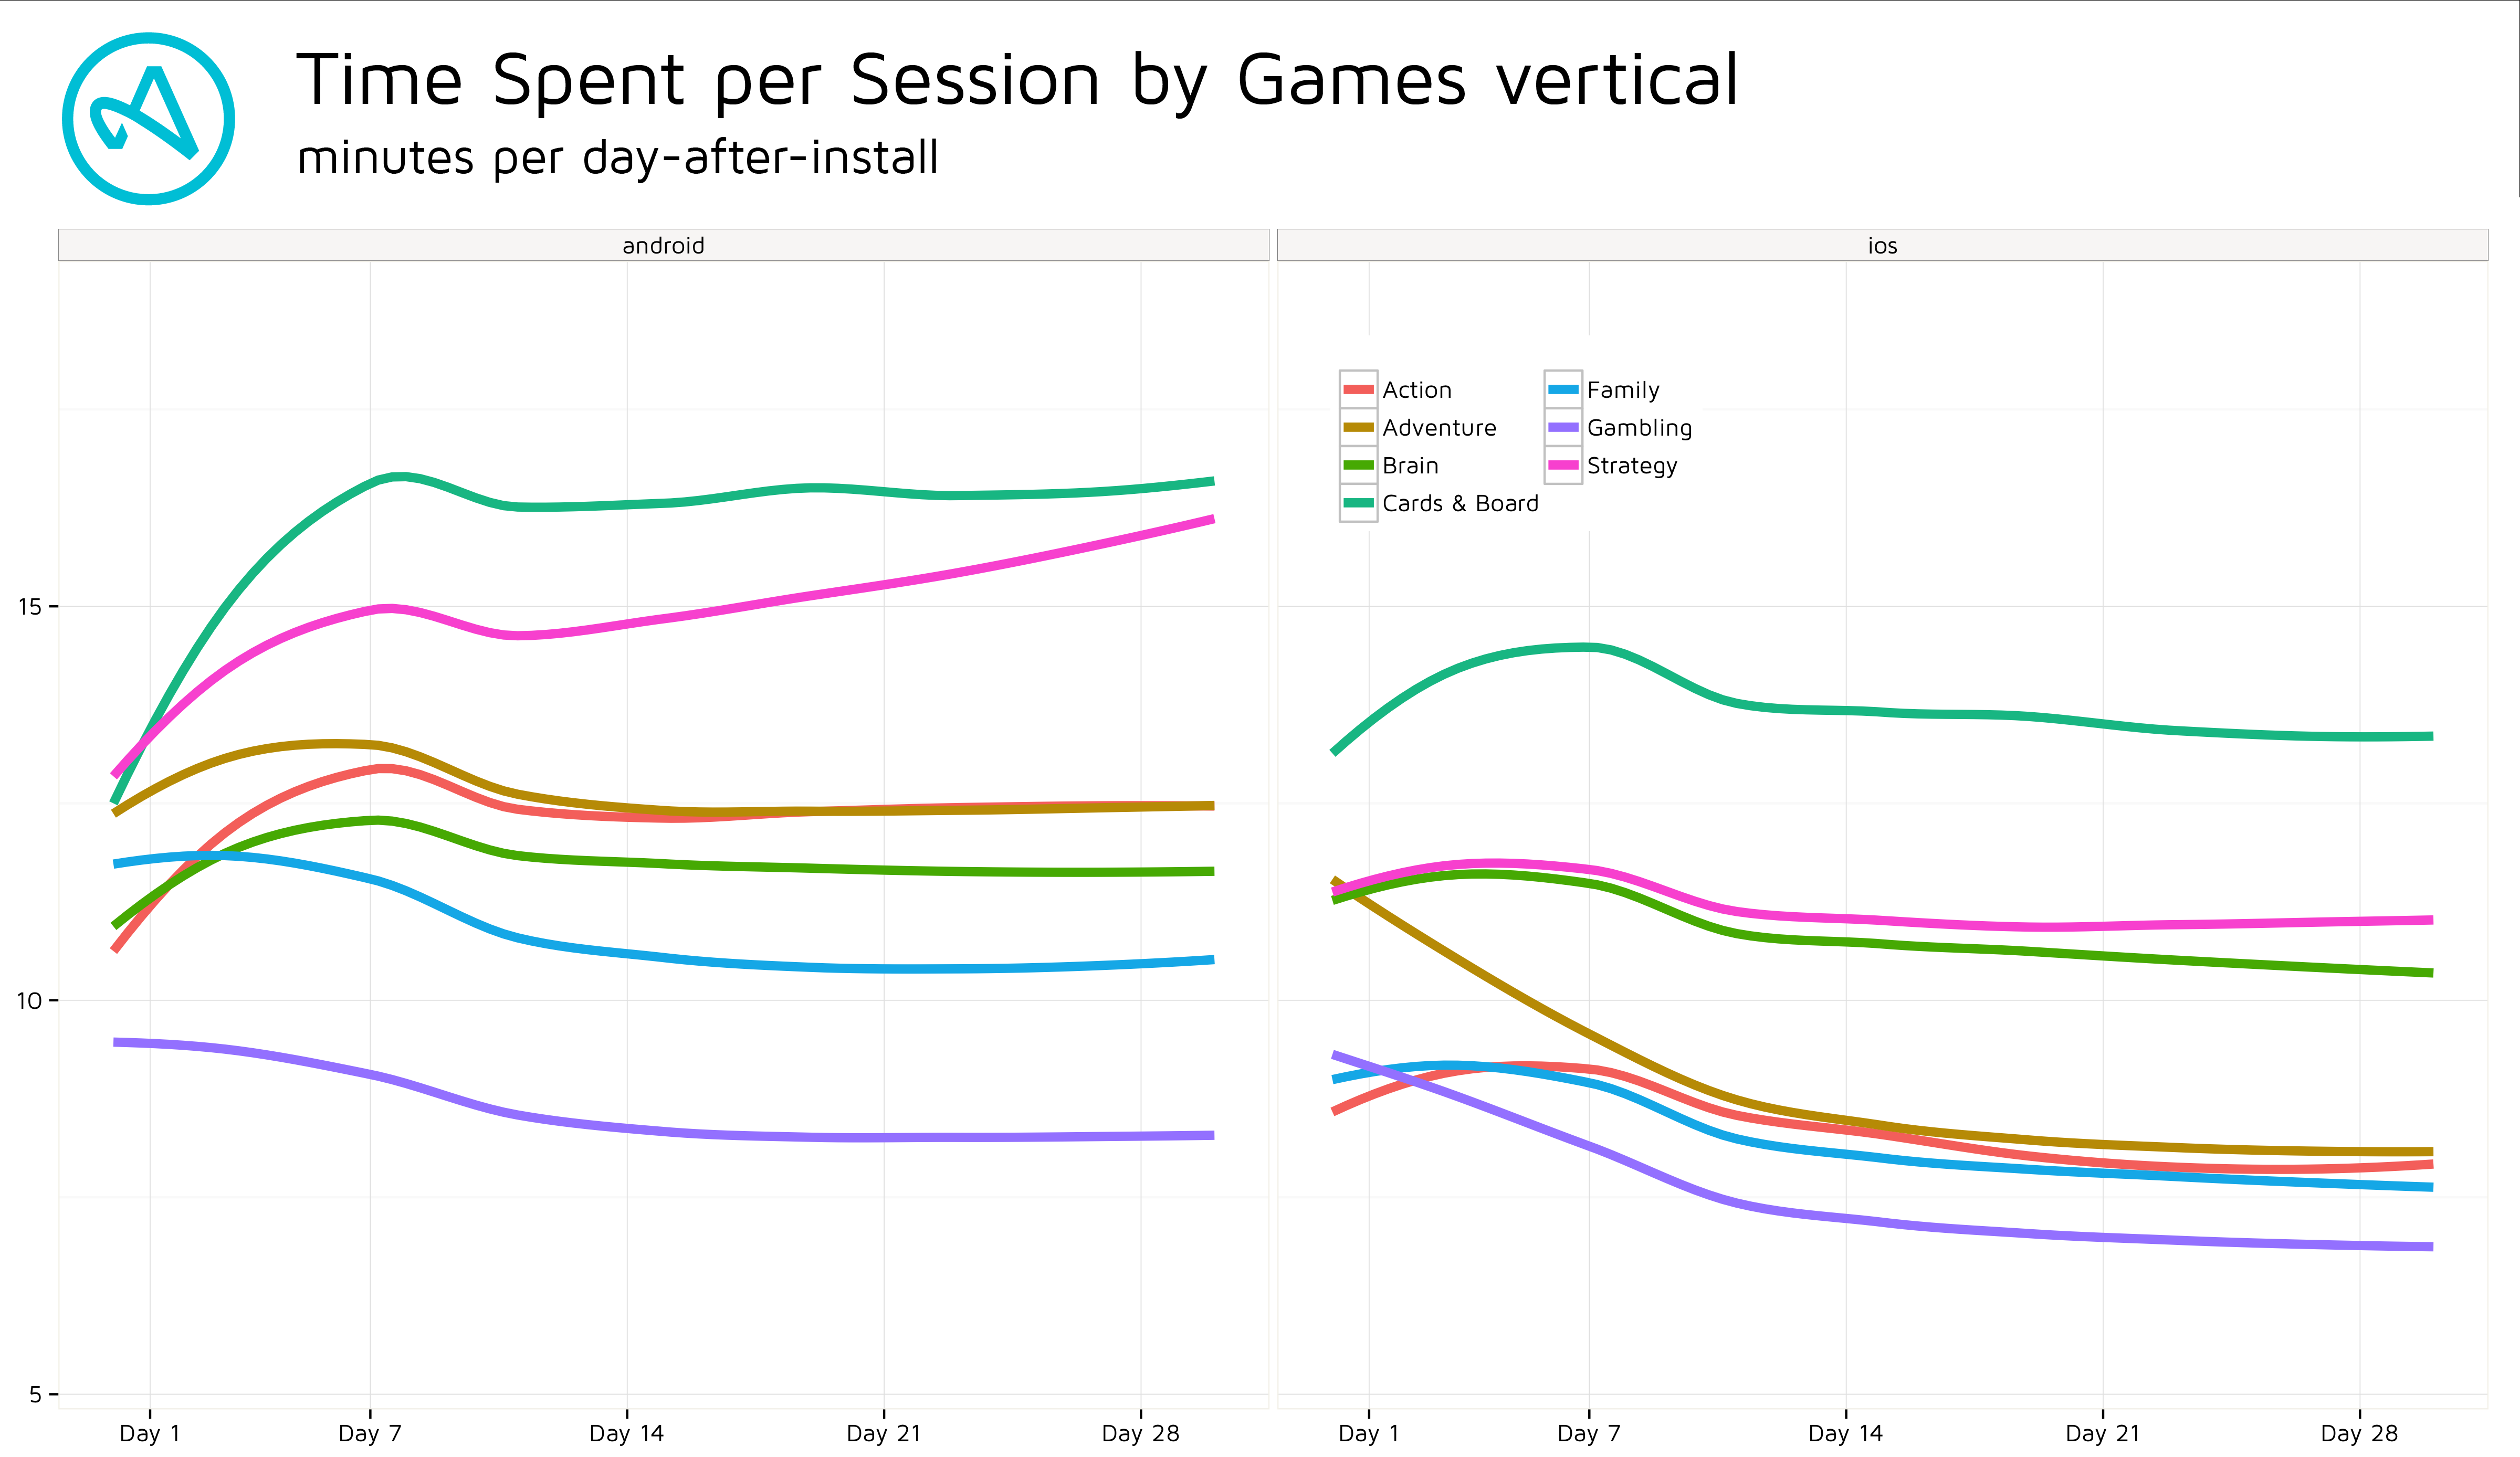 Statistics about the time spent per session for each game category